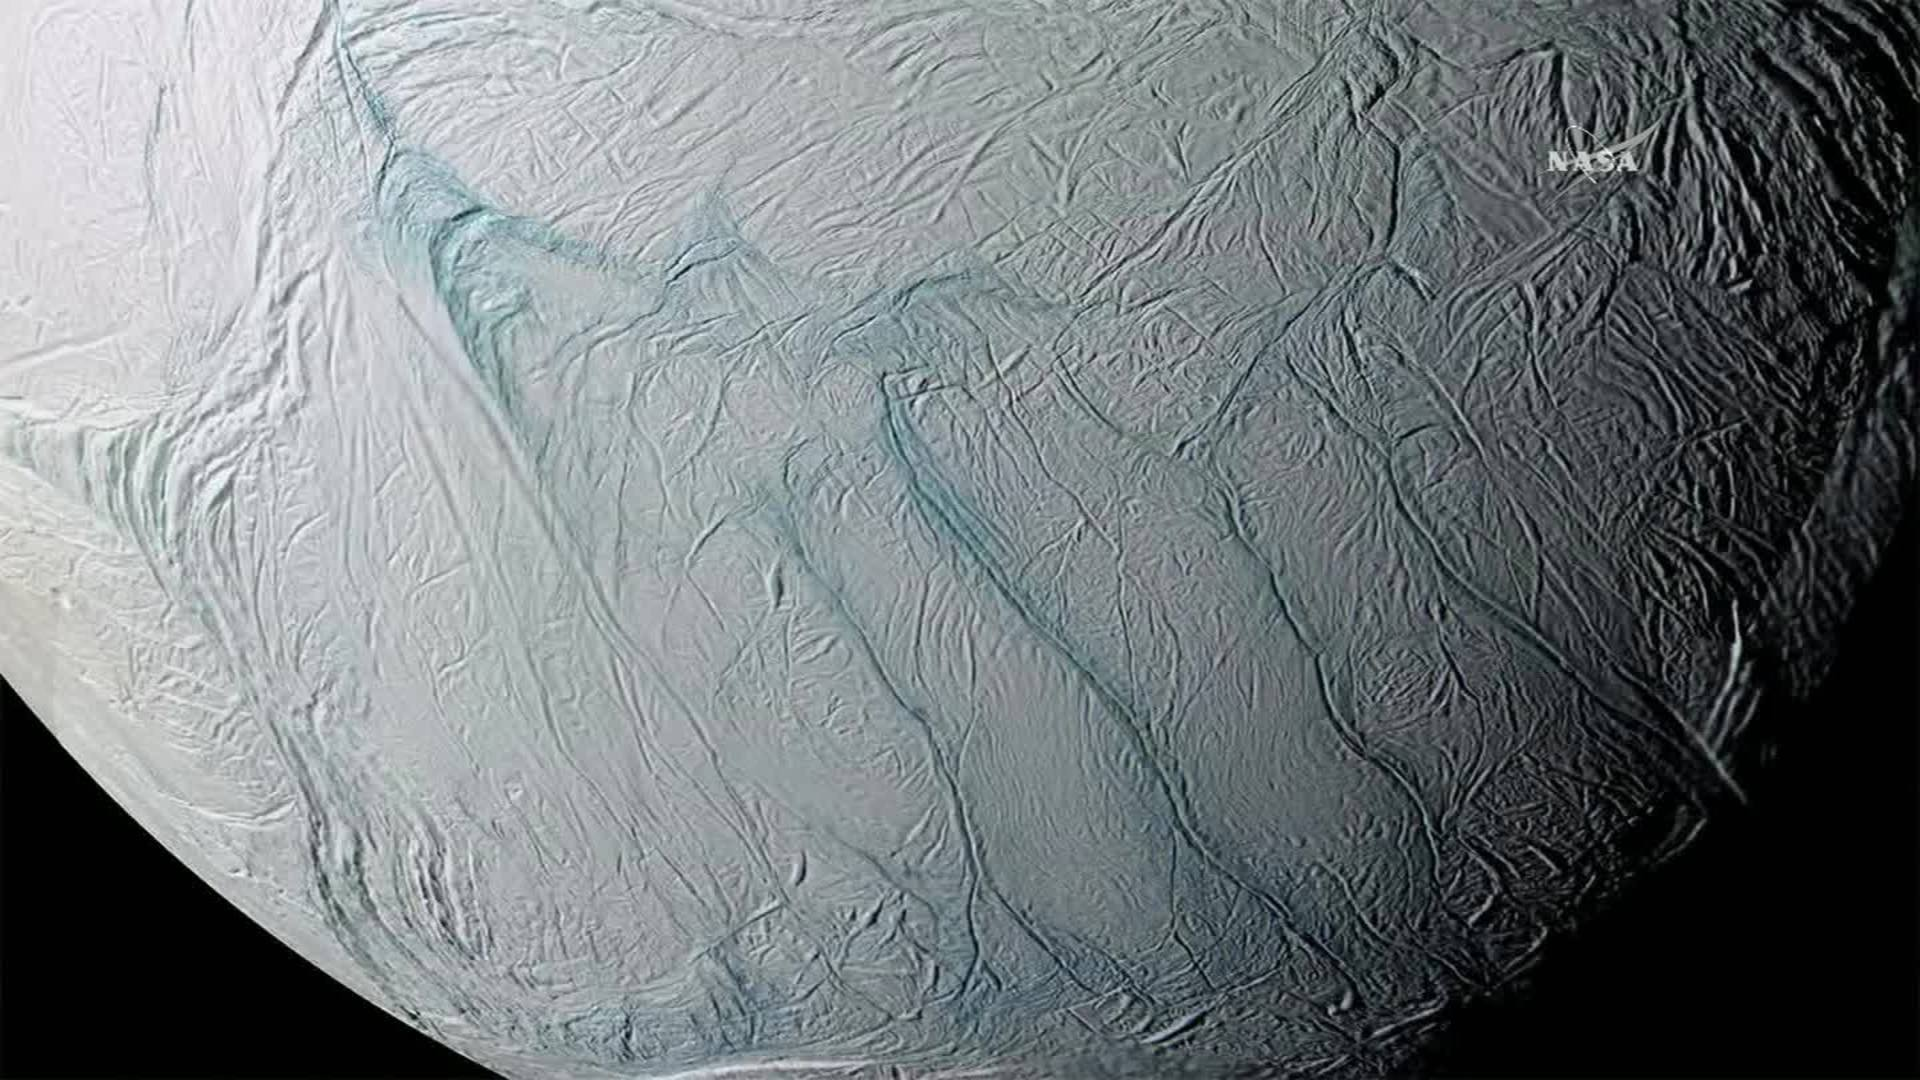 How did Saturn's moon get its tiger stripes? A 'just so' space story